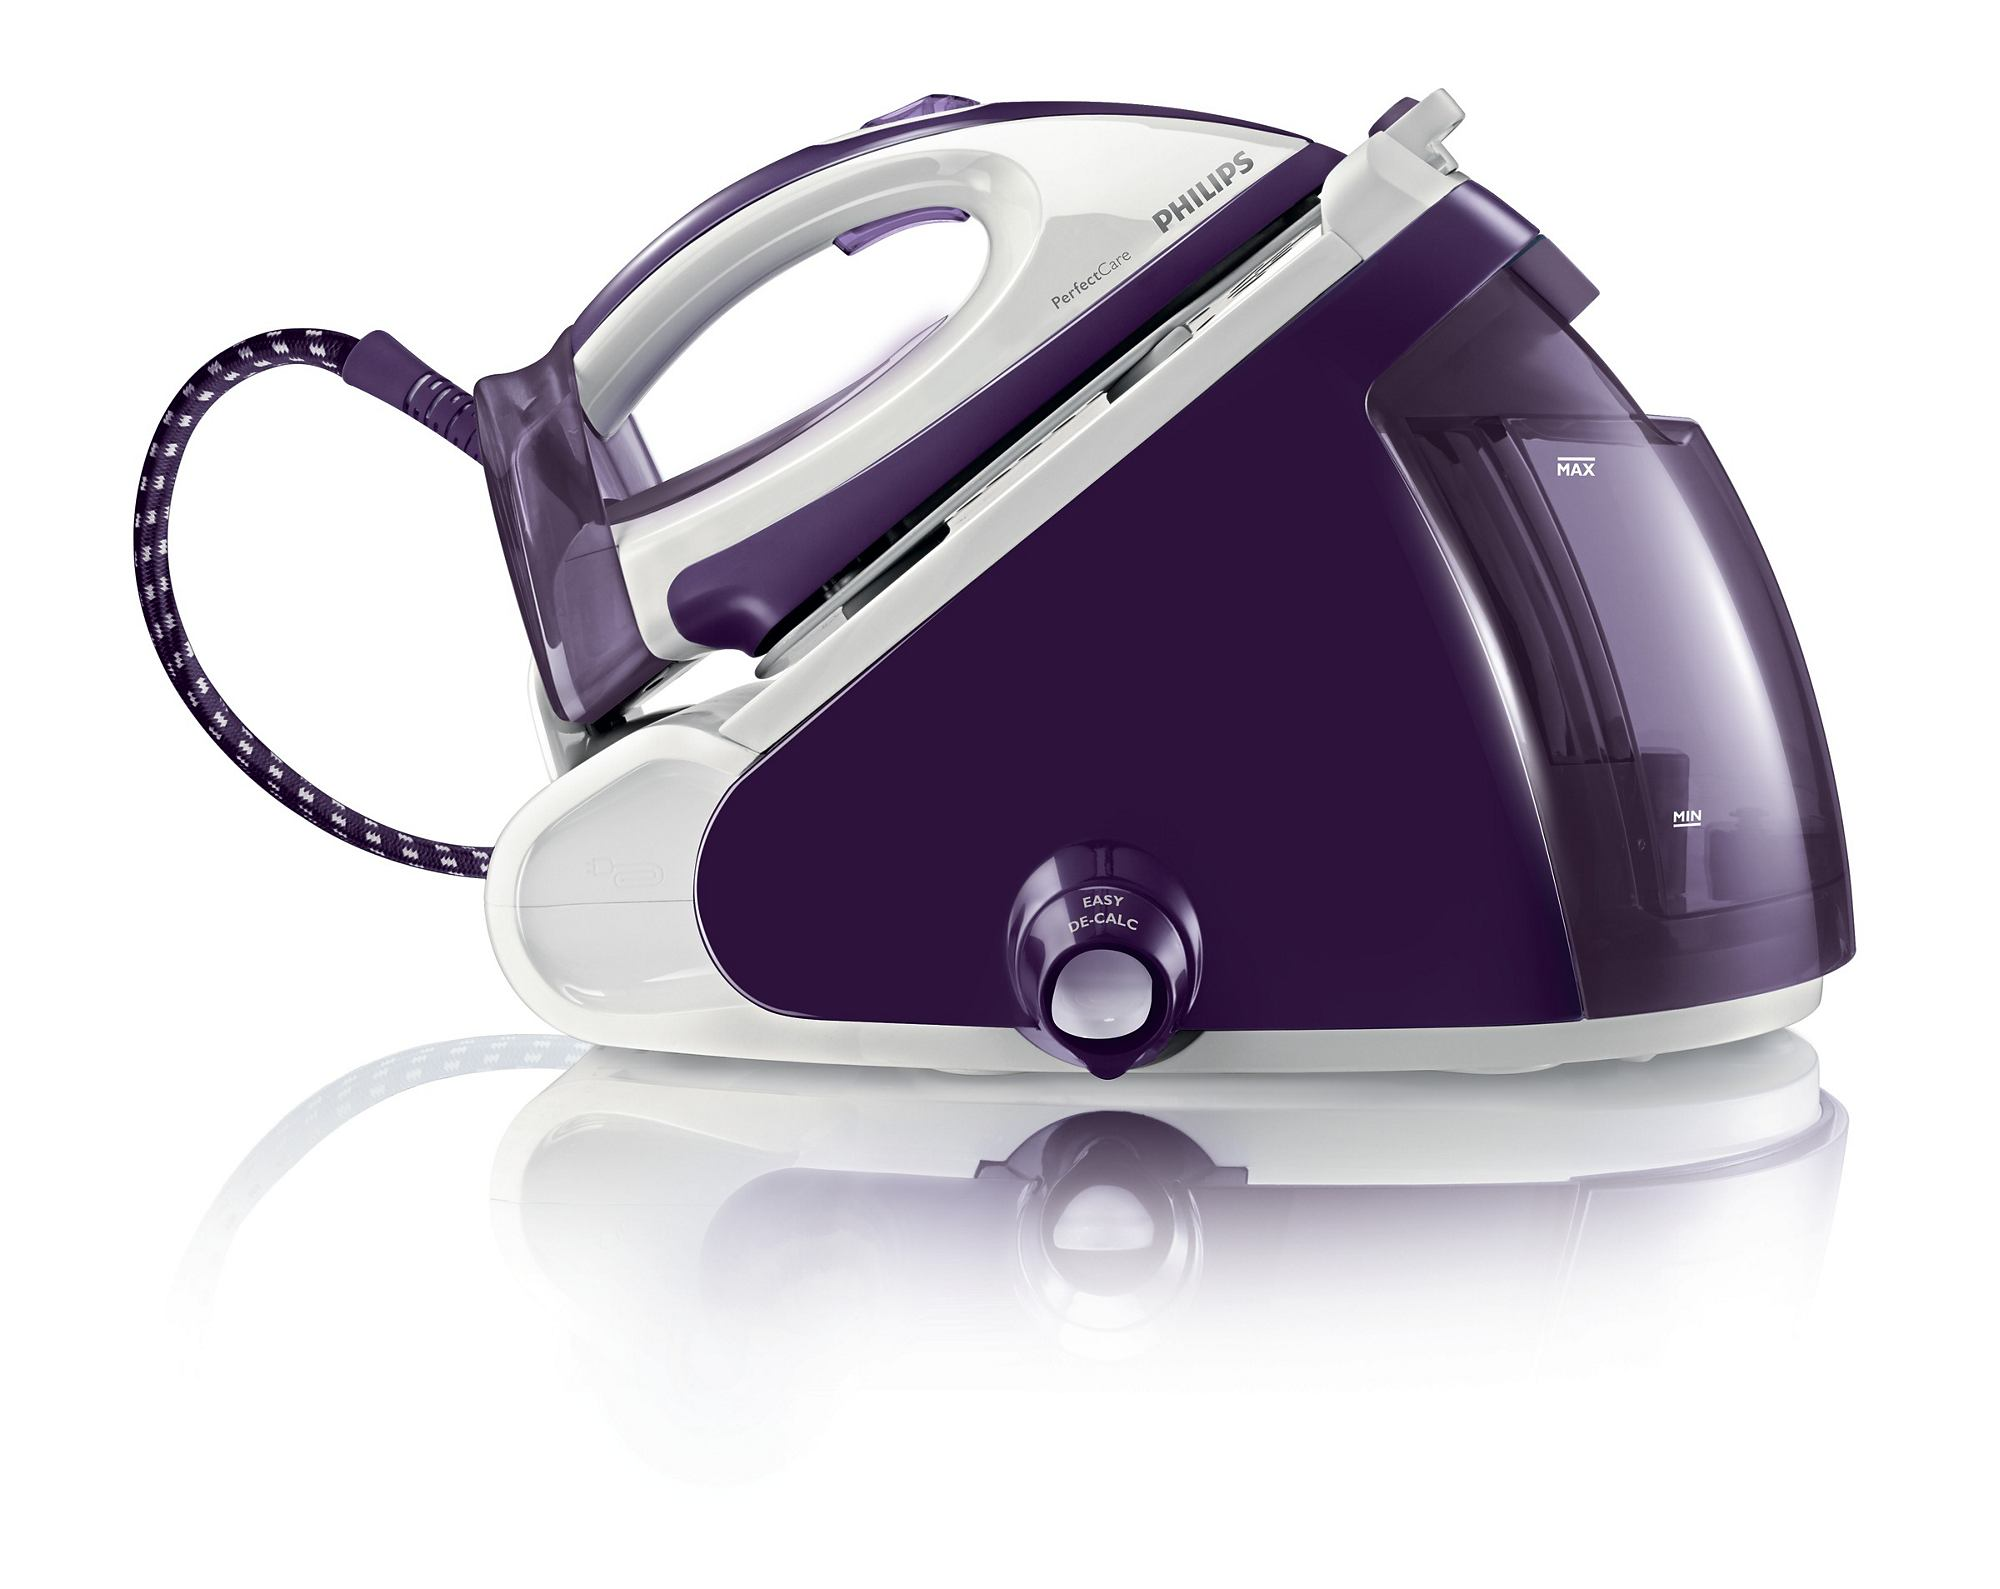 philips gc9240 02 perfect care steam generator iron ebay